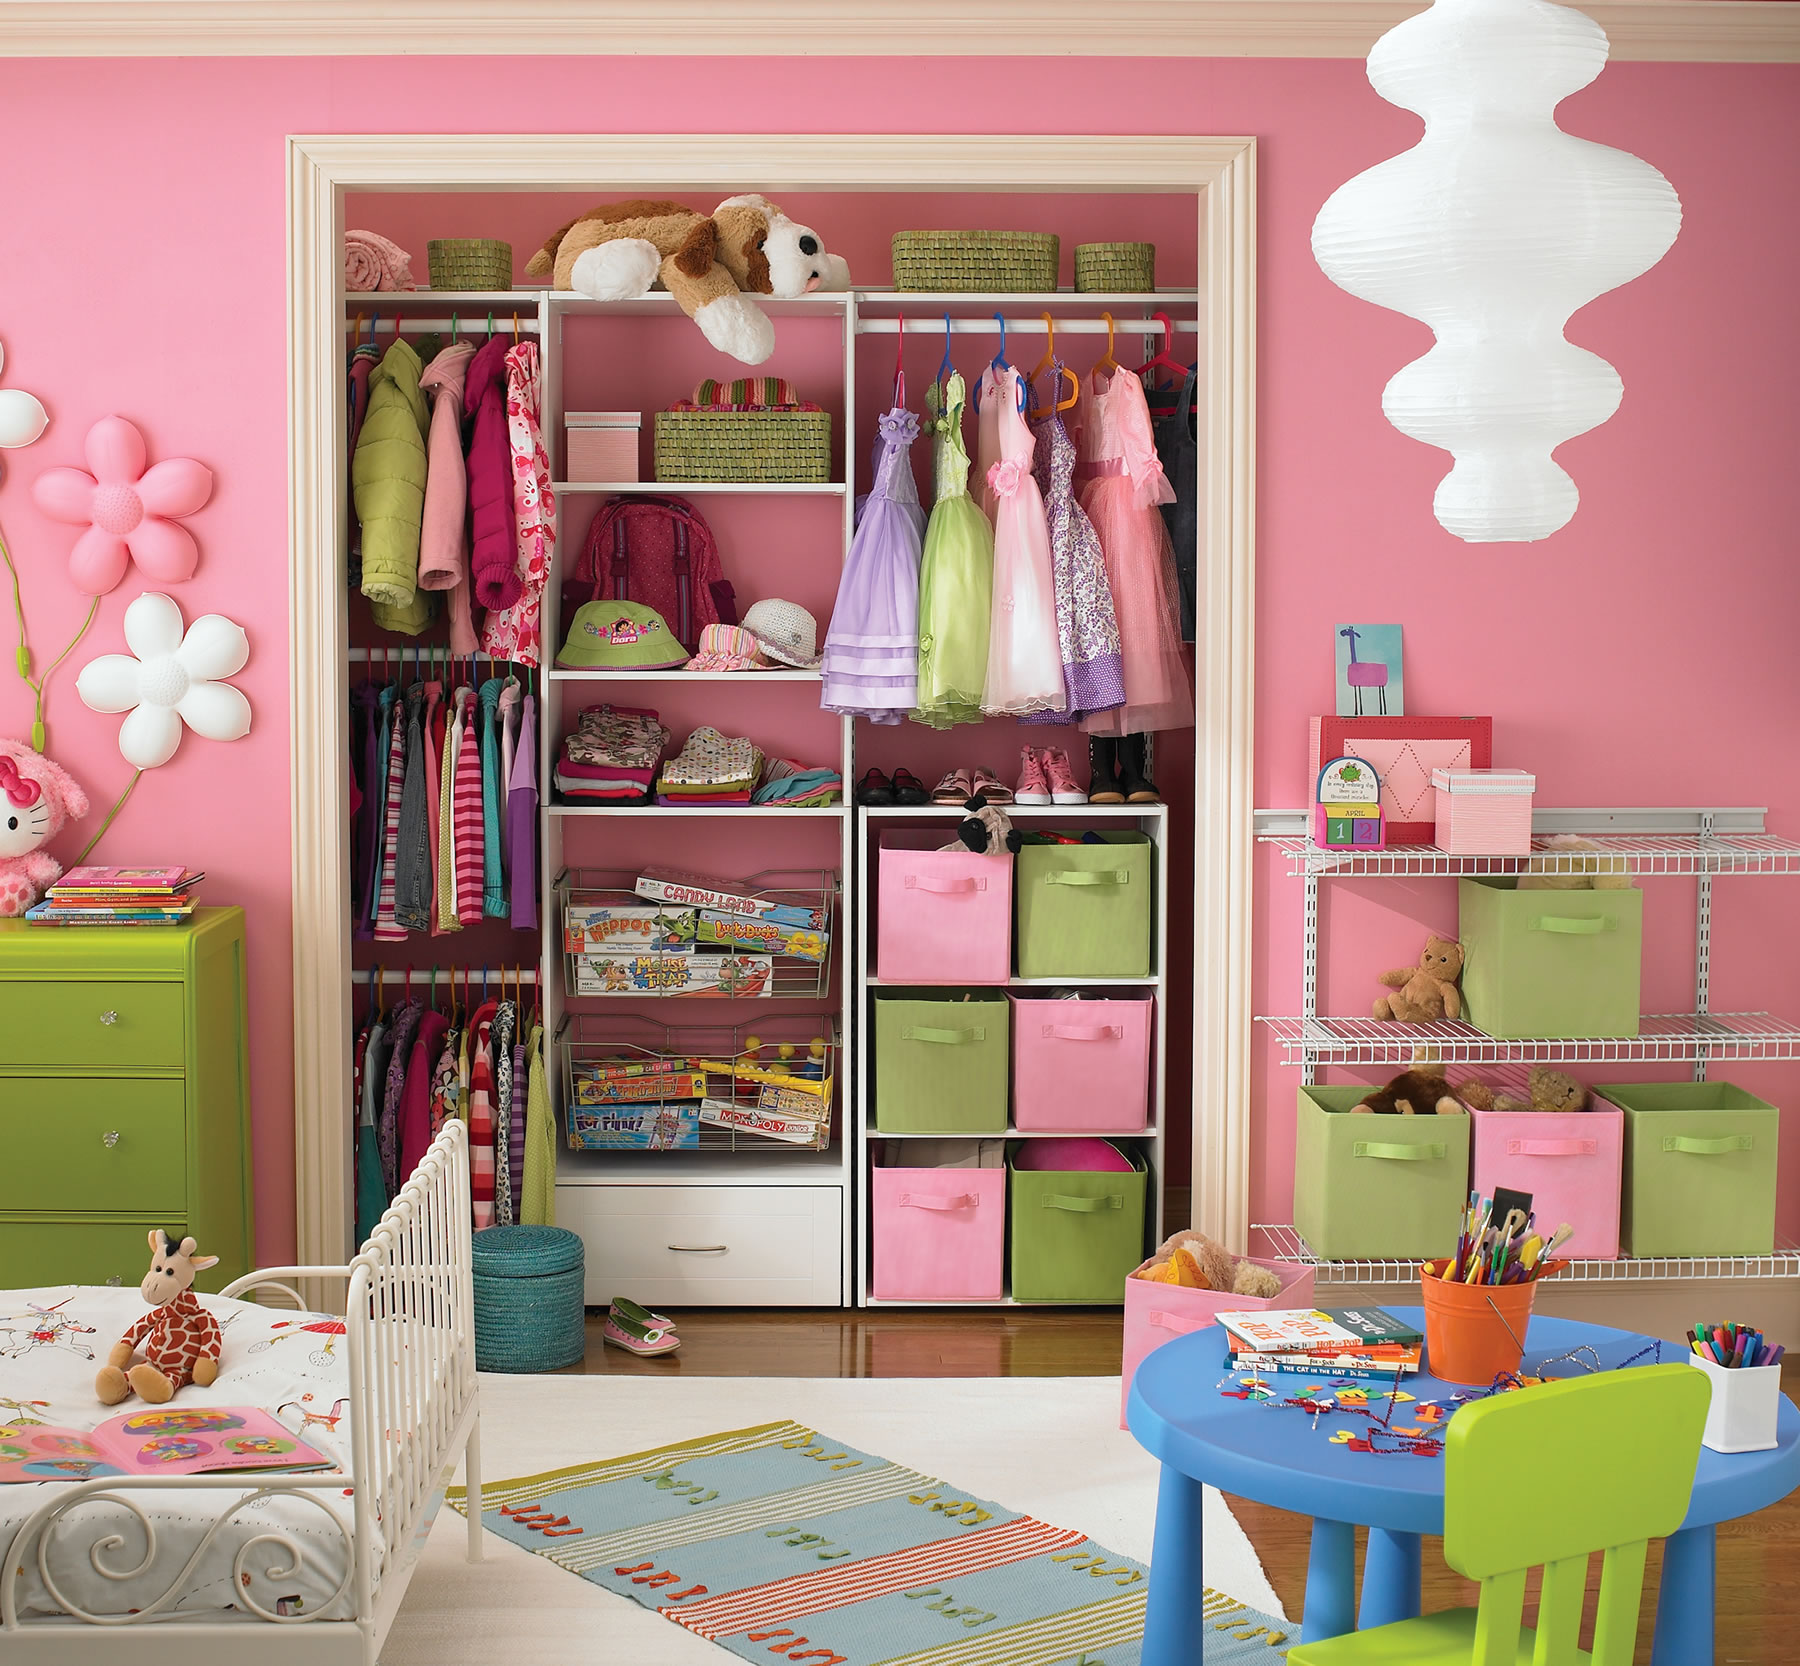 Home Decor 2012 Luxury Homes Interior Decoration Living: Baby-storage-ideas-for-small-spaces